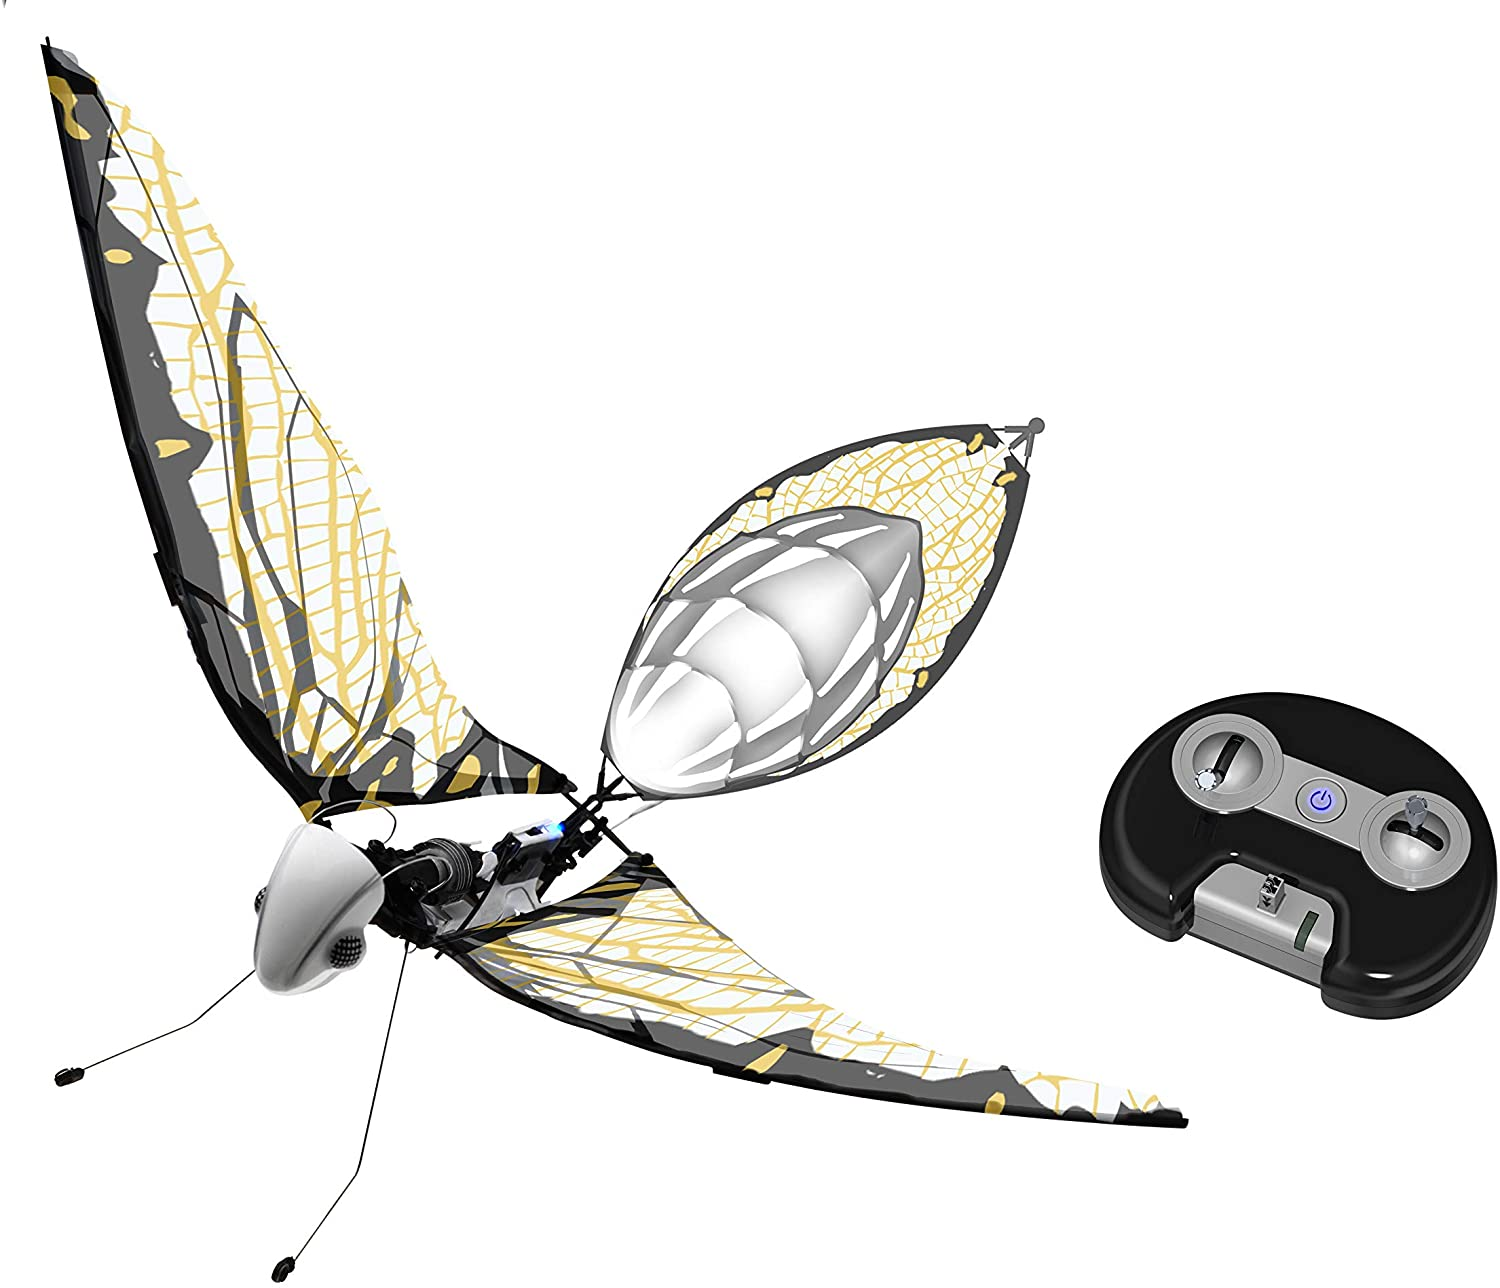 MetaFly Upgrade Kit by BionicBird - Biomimetic and Radio-Controlled Drone Insect for Indoor and Outdoor use